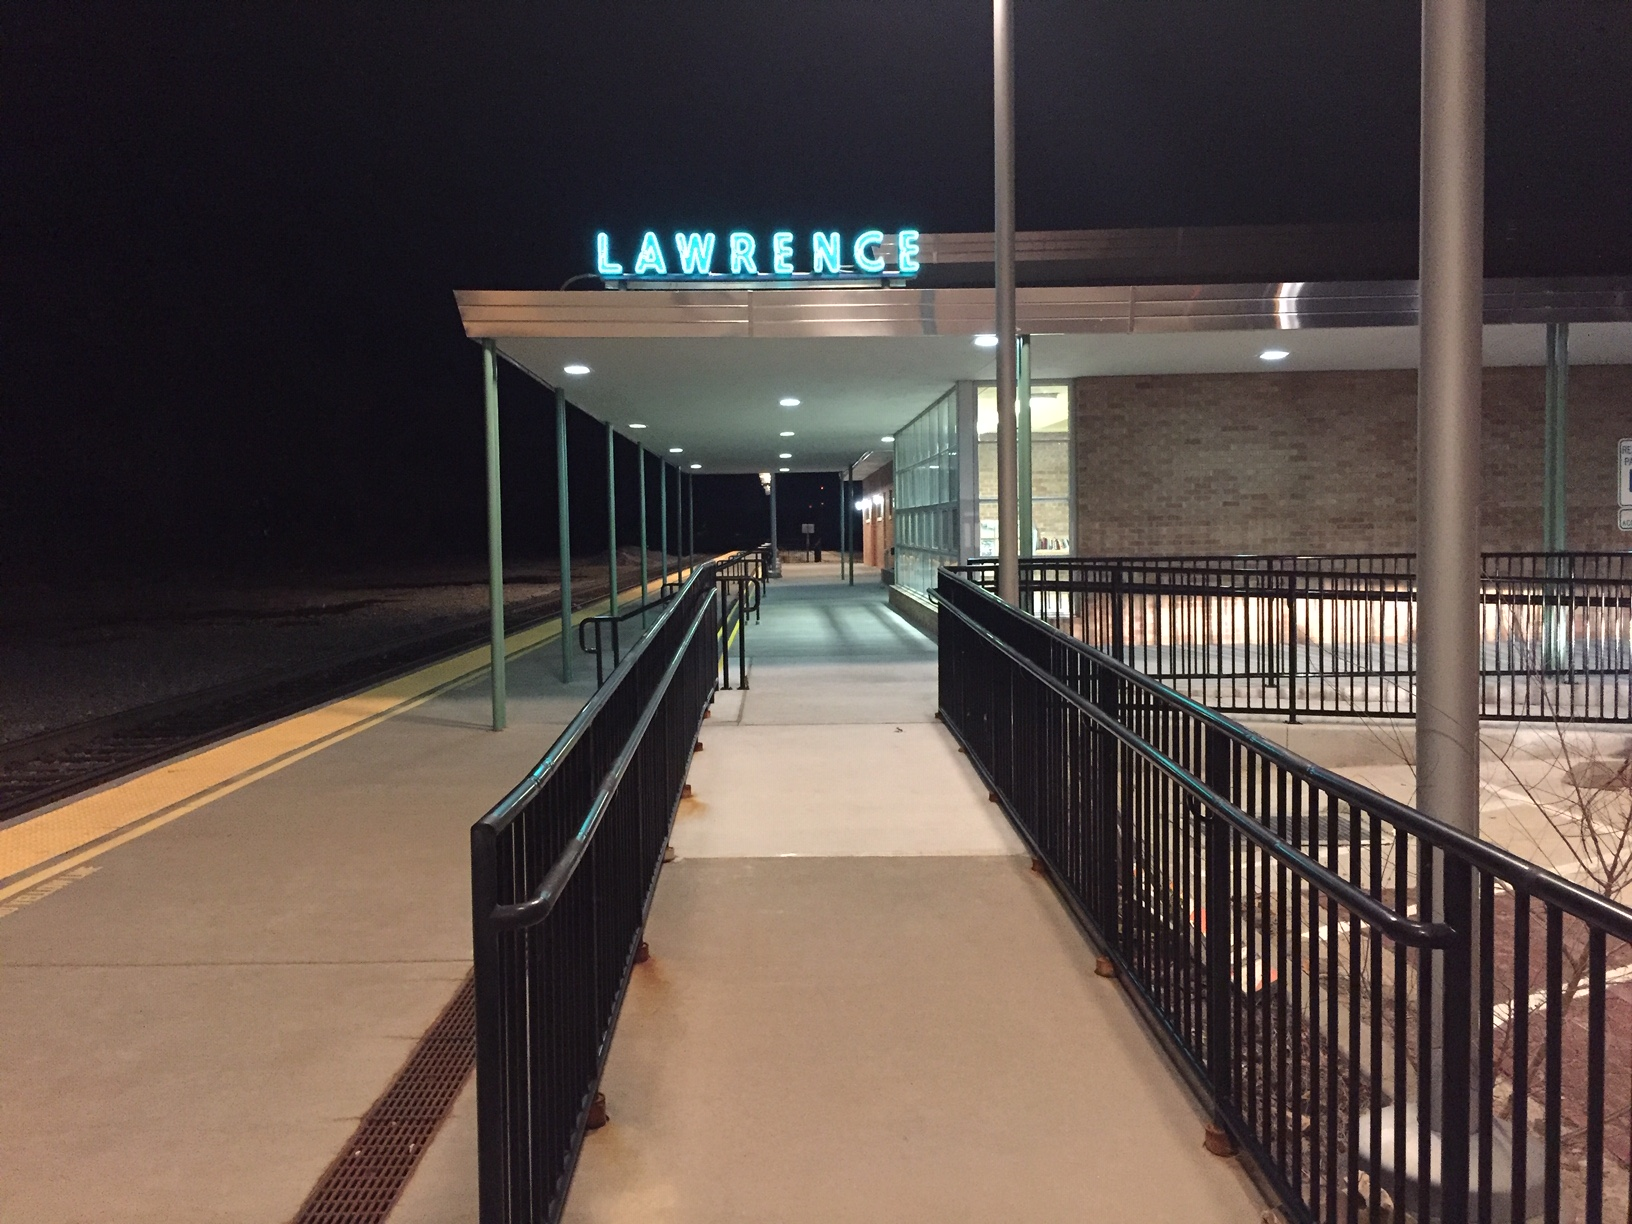 Lawrence train depot (Photo by J. Schafer)